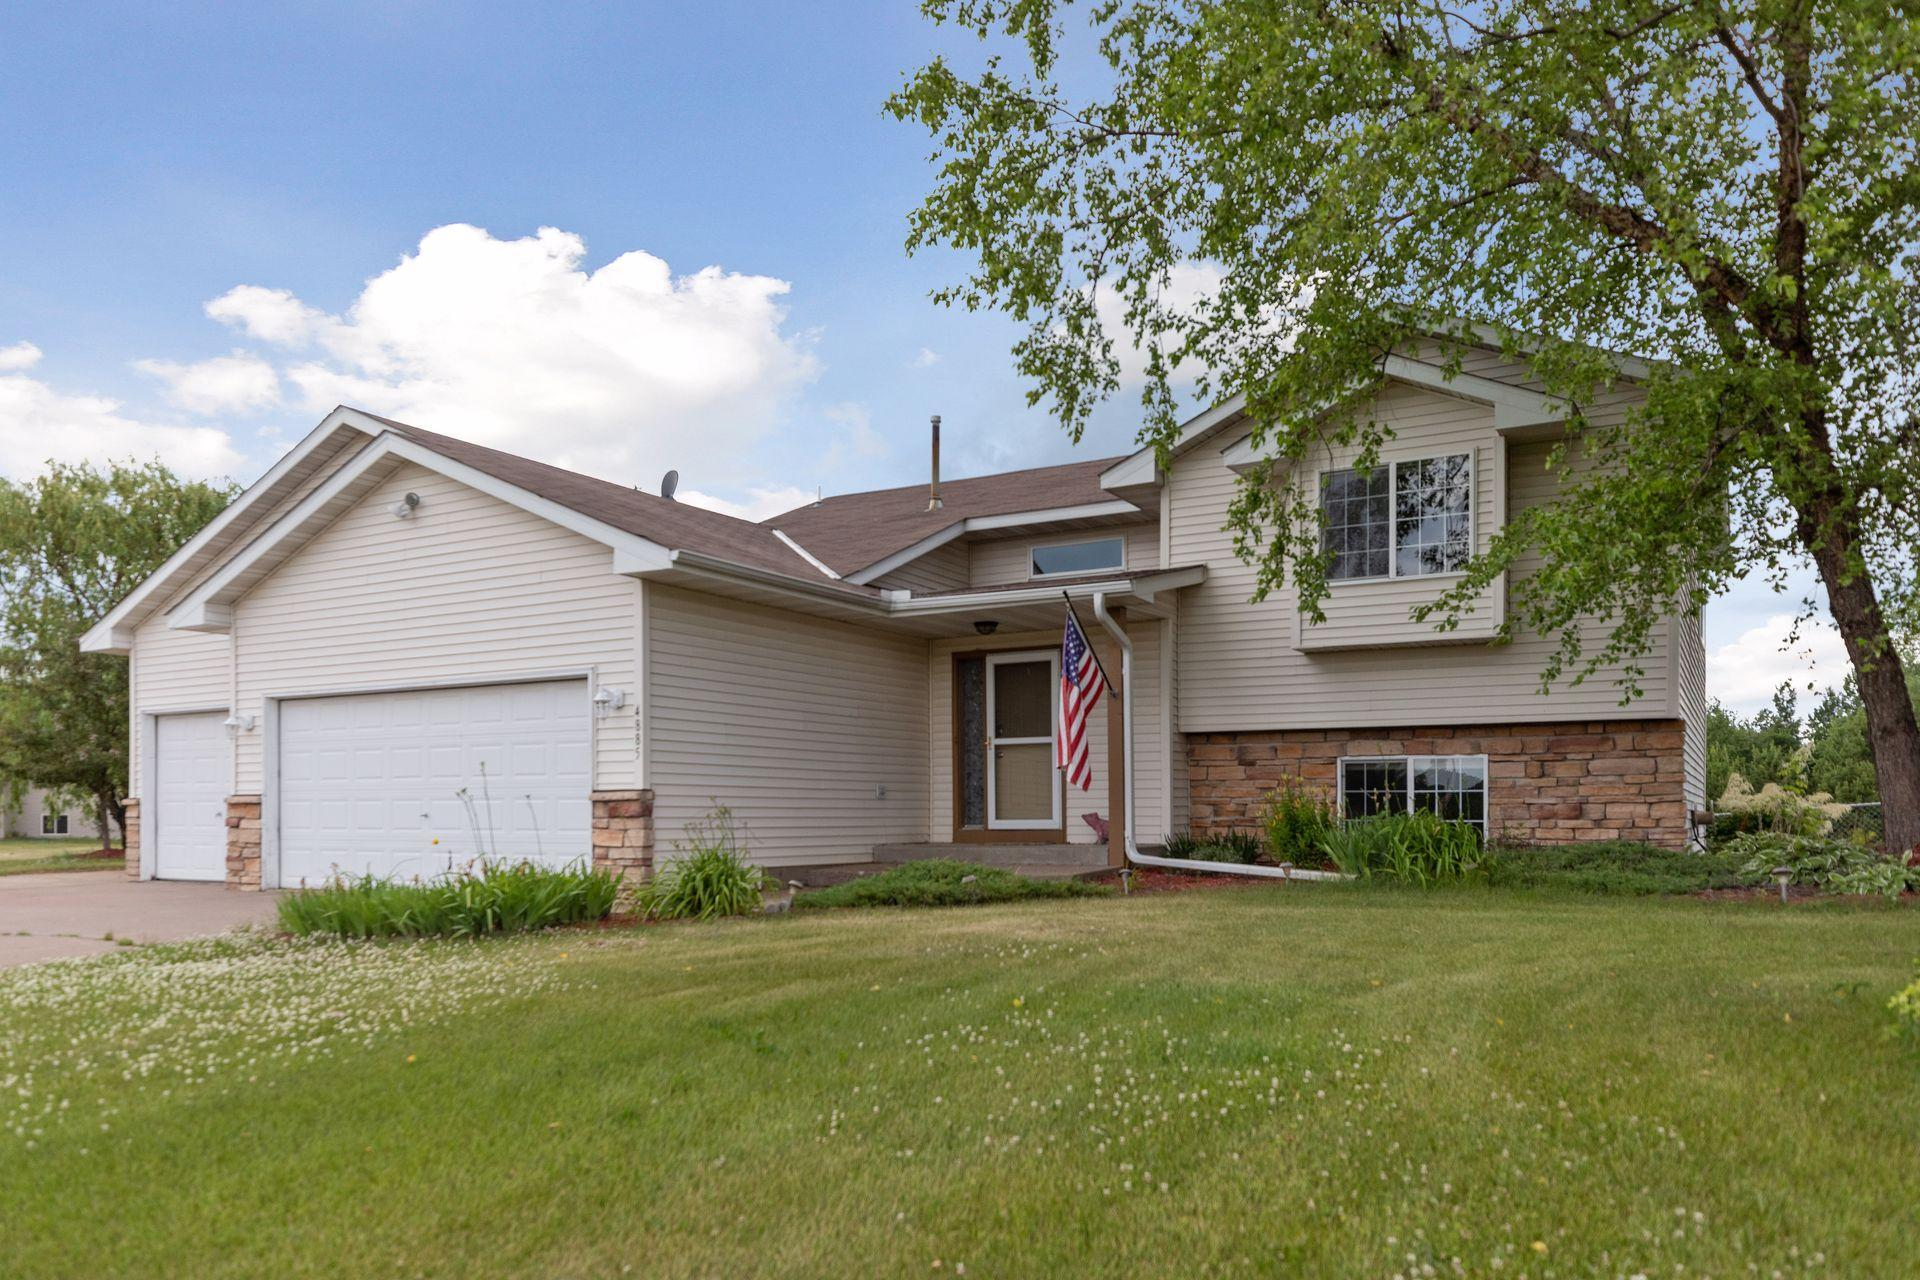 4885 241st NW Property Photo - Saint Francis, MN real estate listing